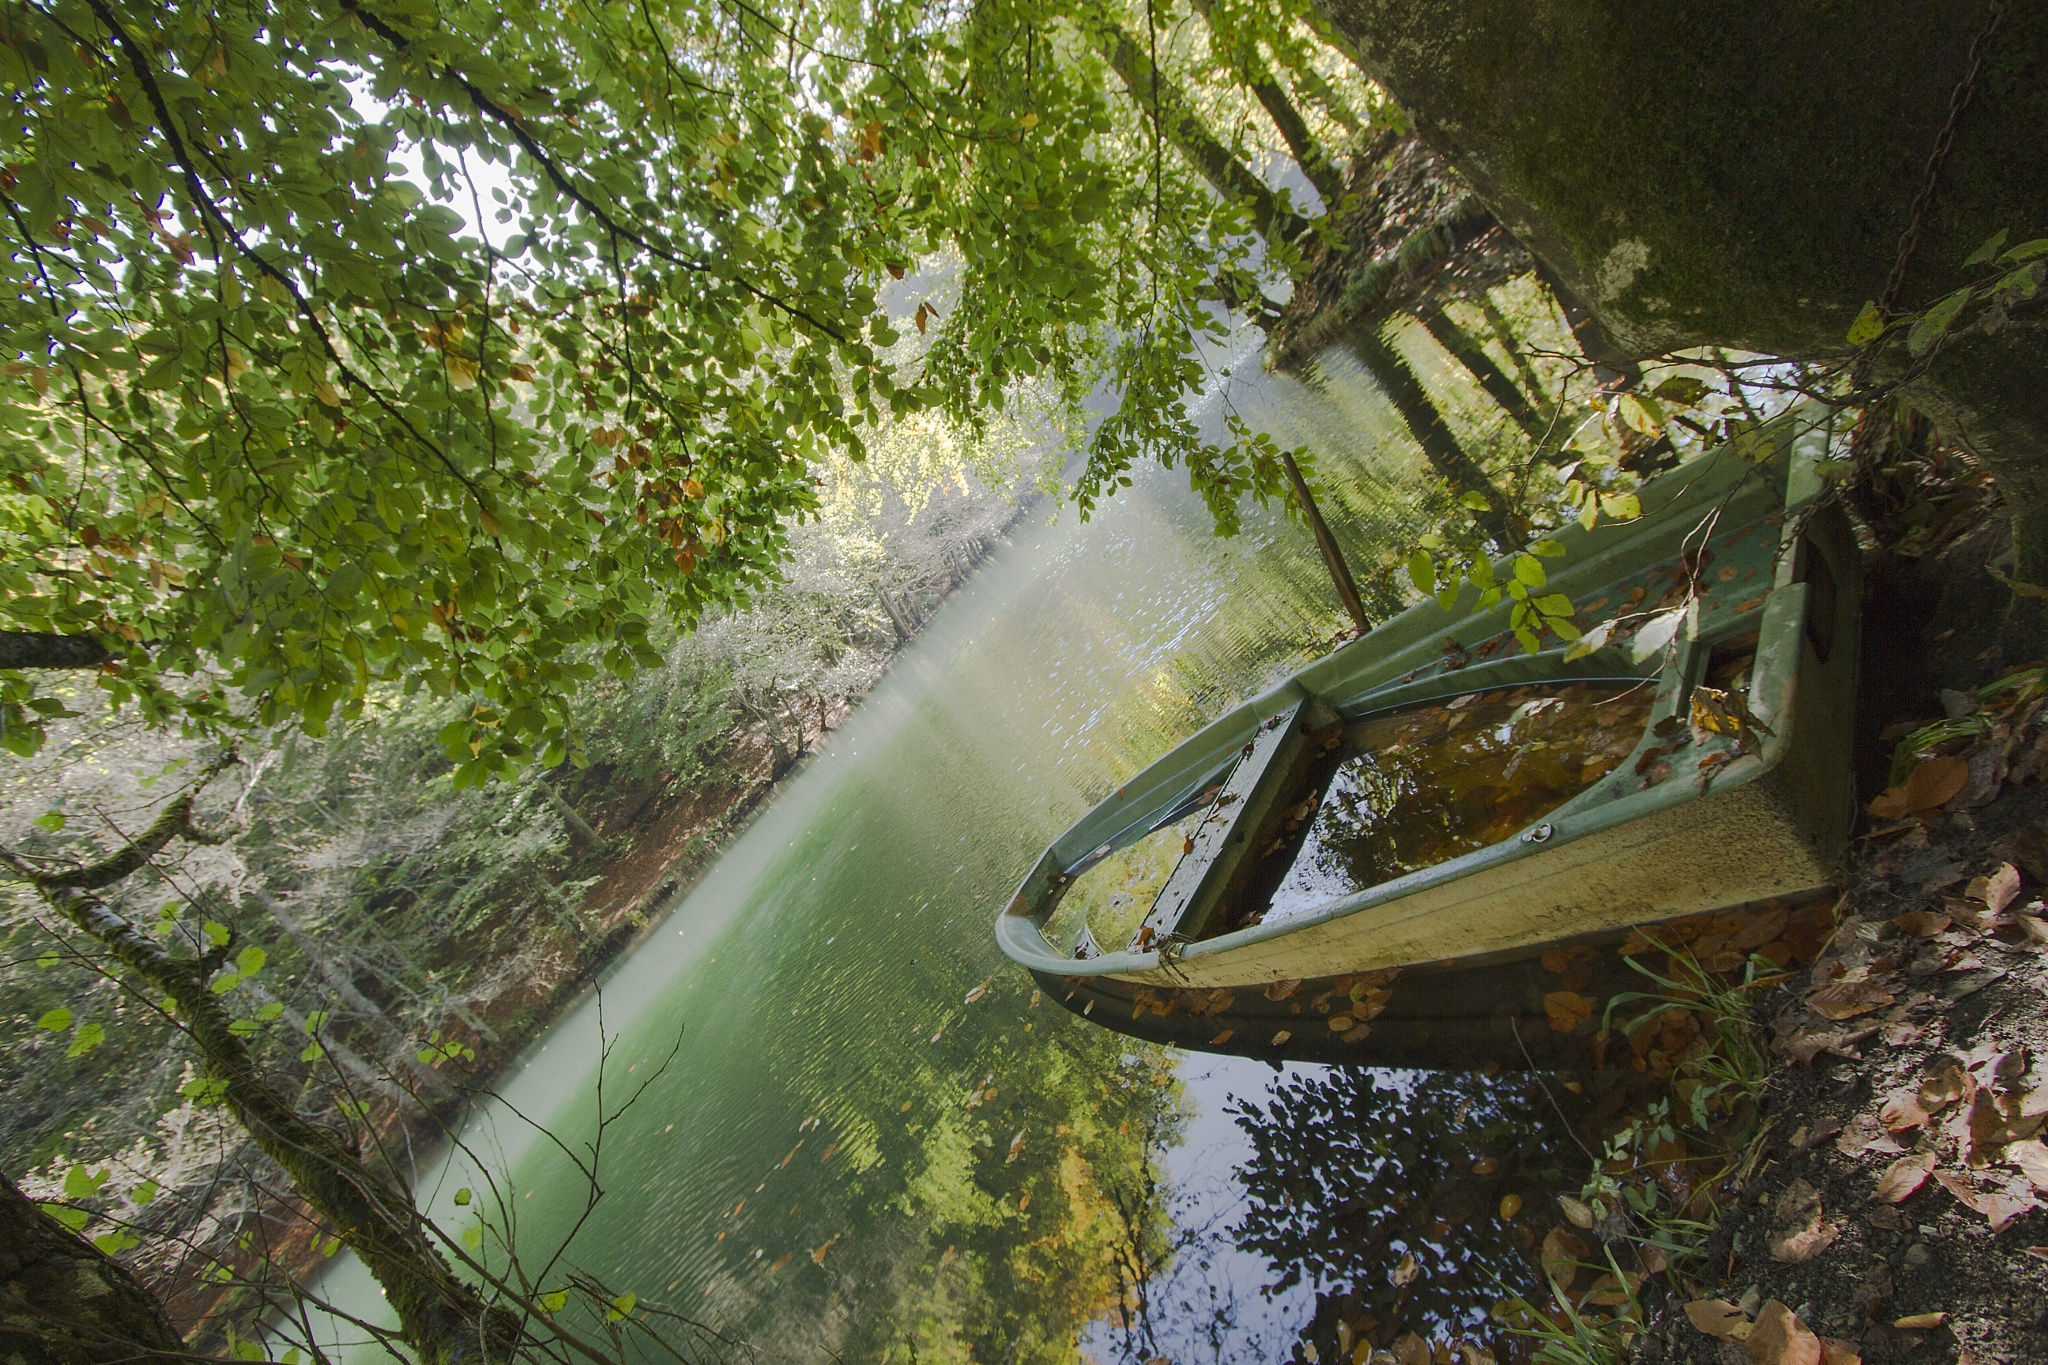 Boat by ismail062004